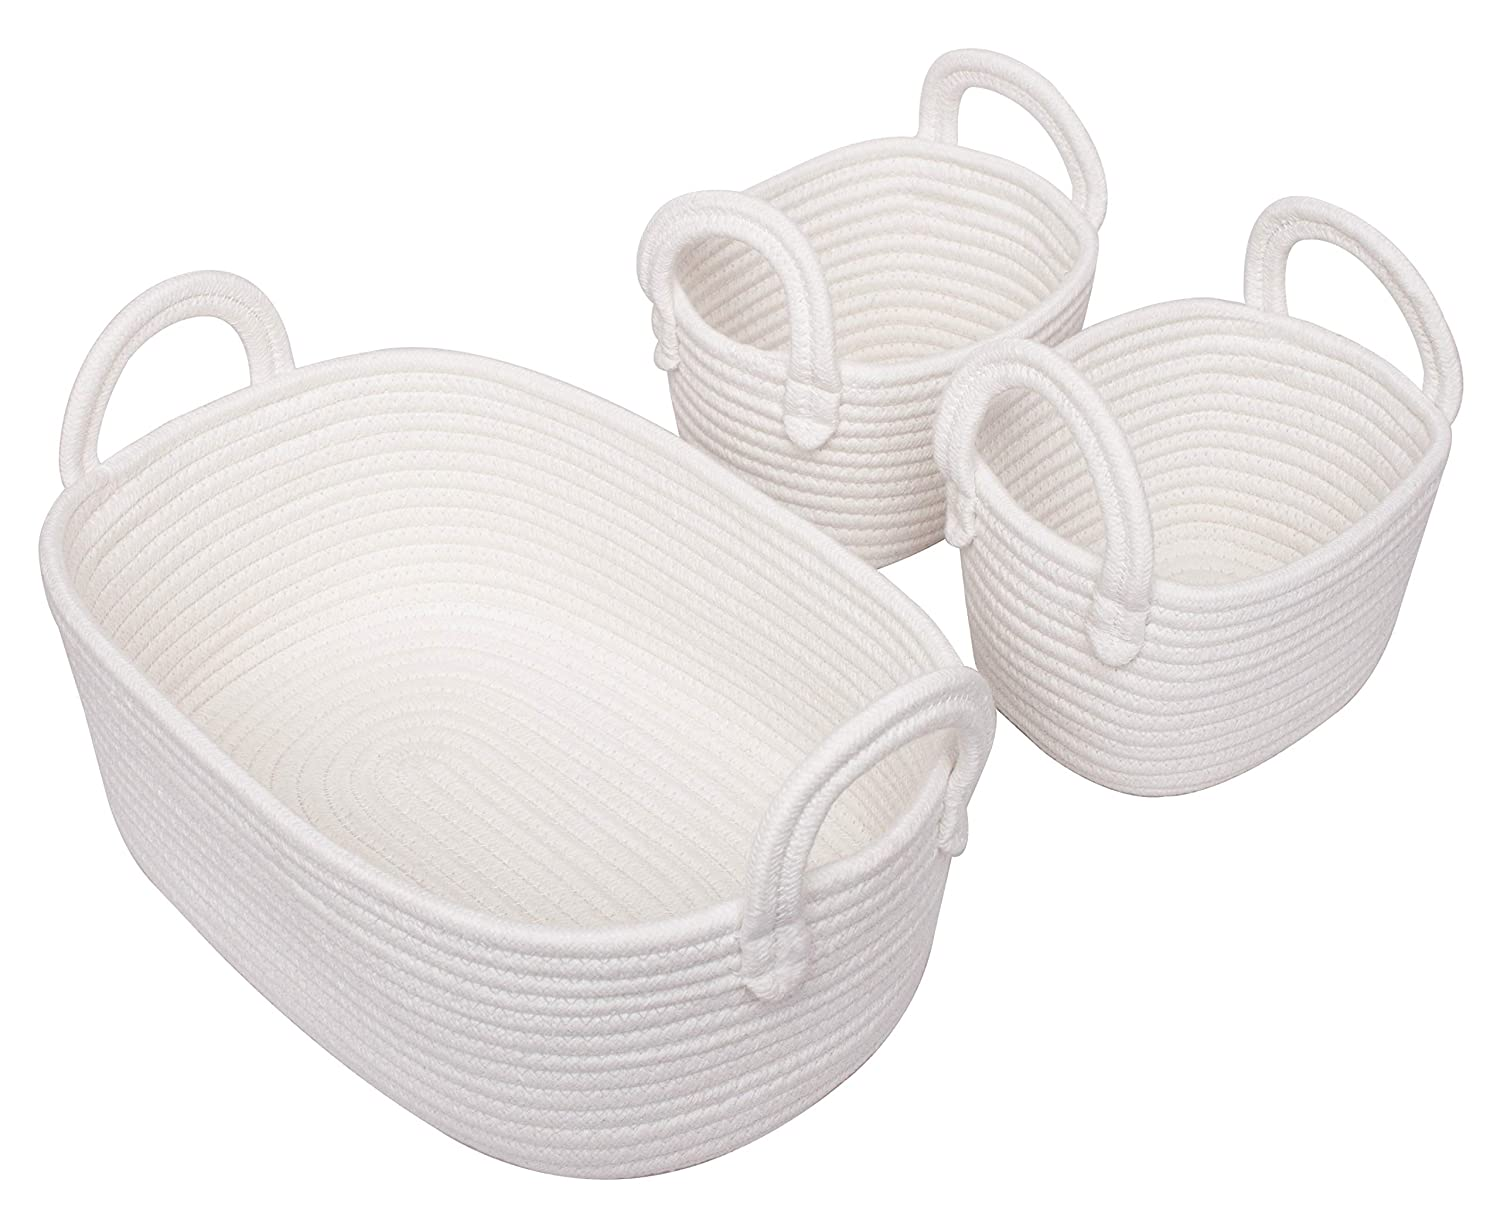 Cotton Rope Storage Baskets, Set of 3 Toy Organizer for Woven Nursery Decor, Gift Basket LA JOLIE MUSE